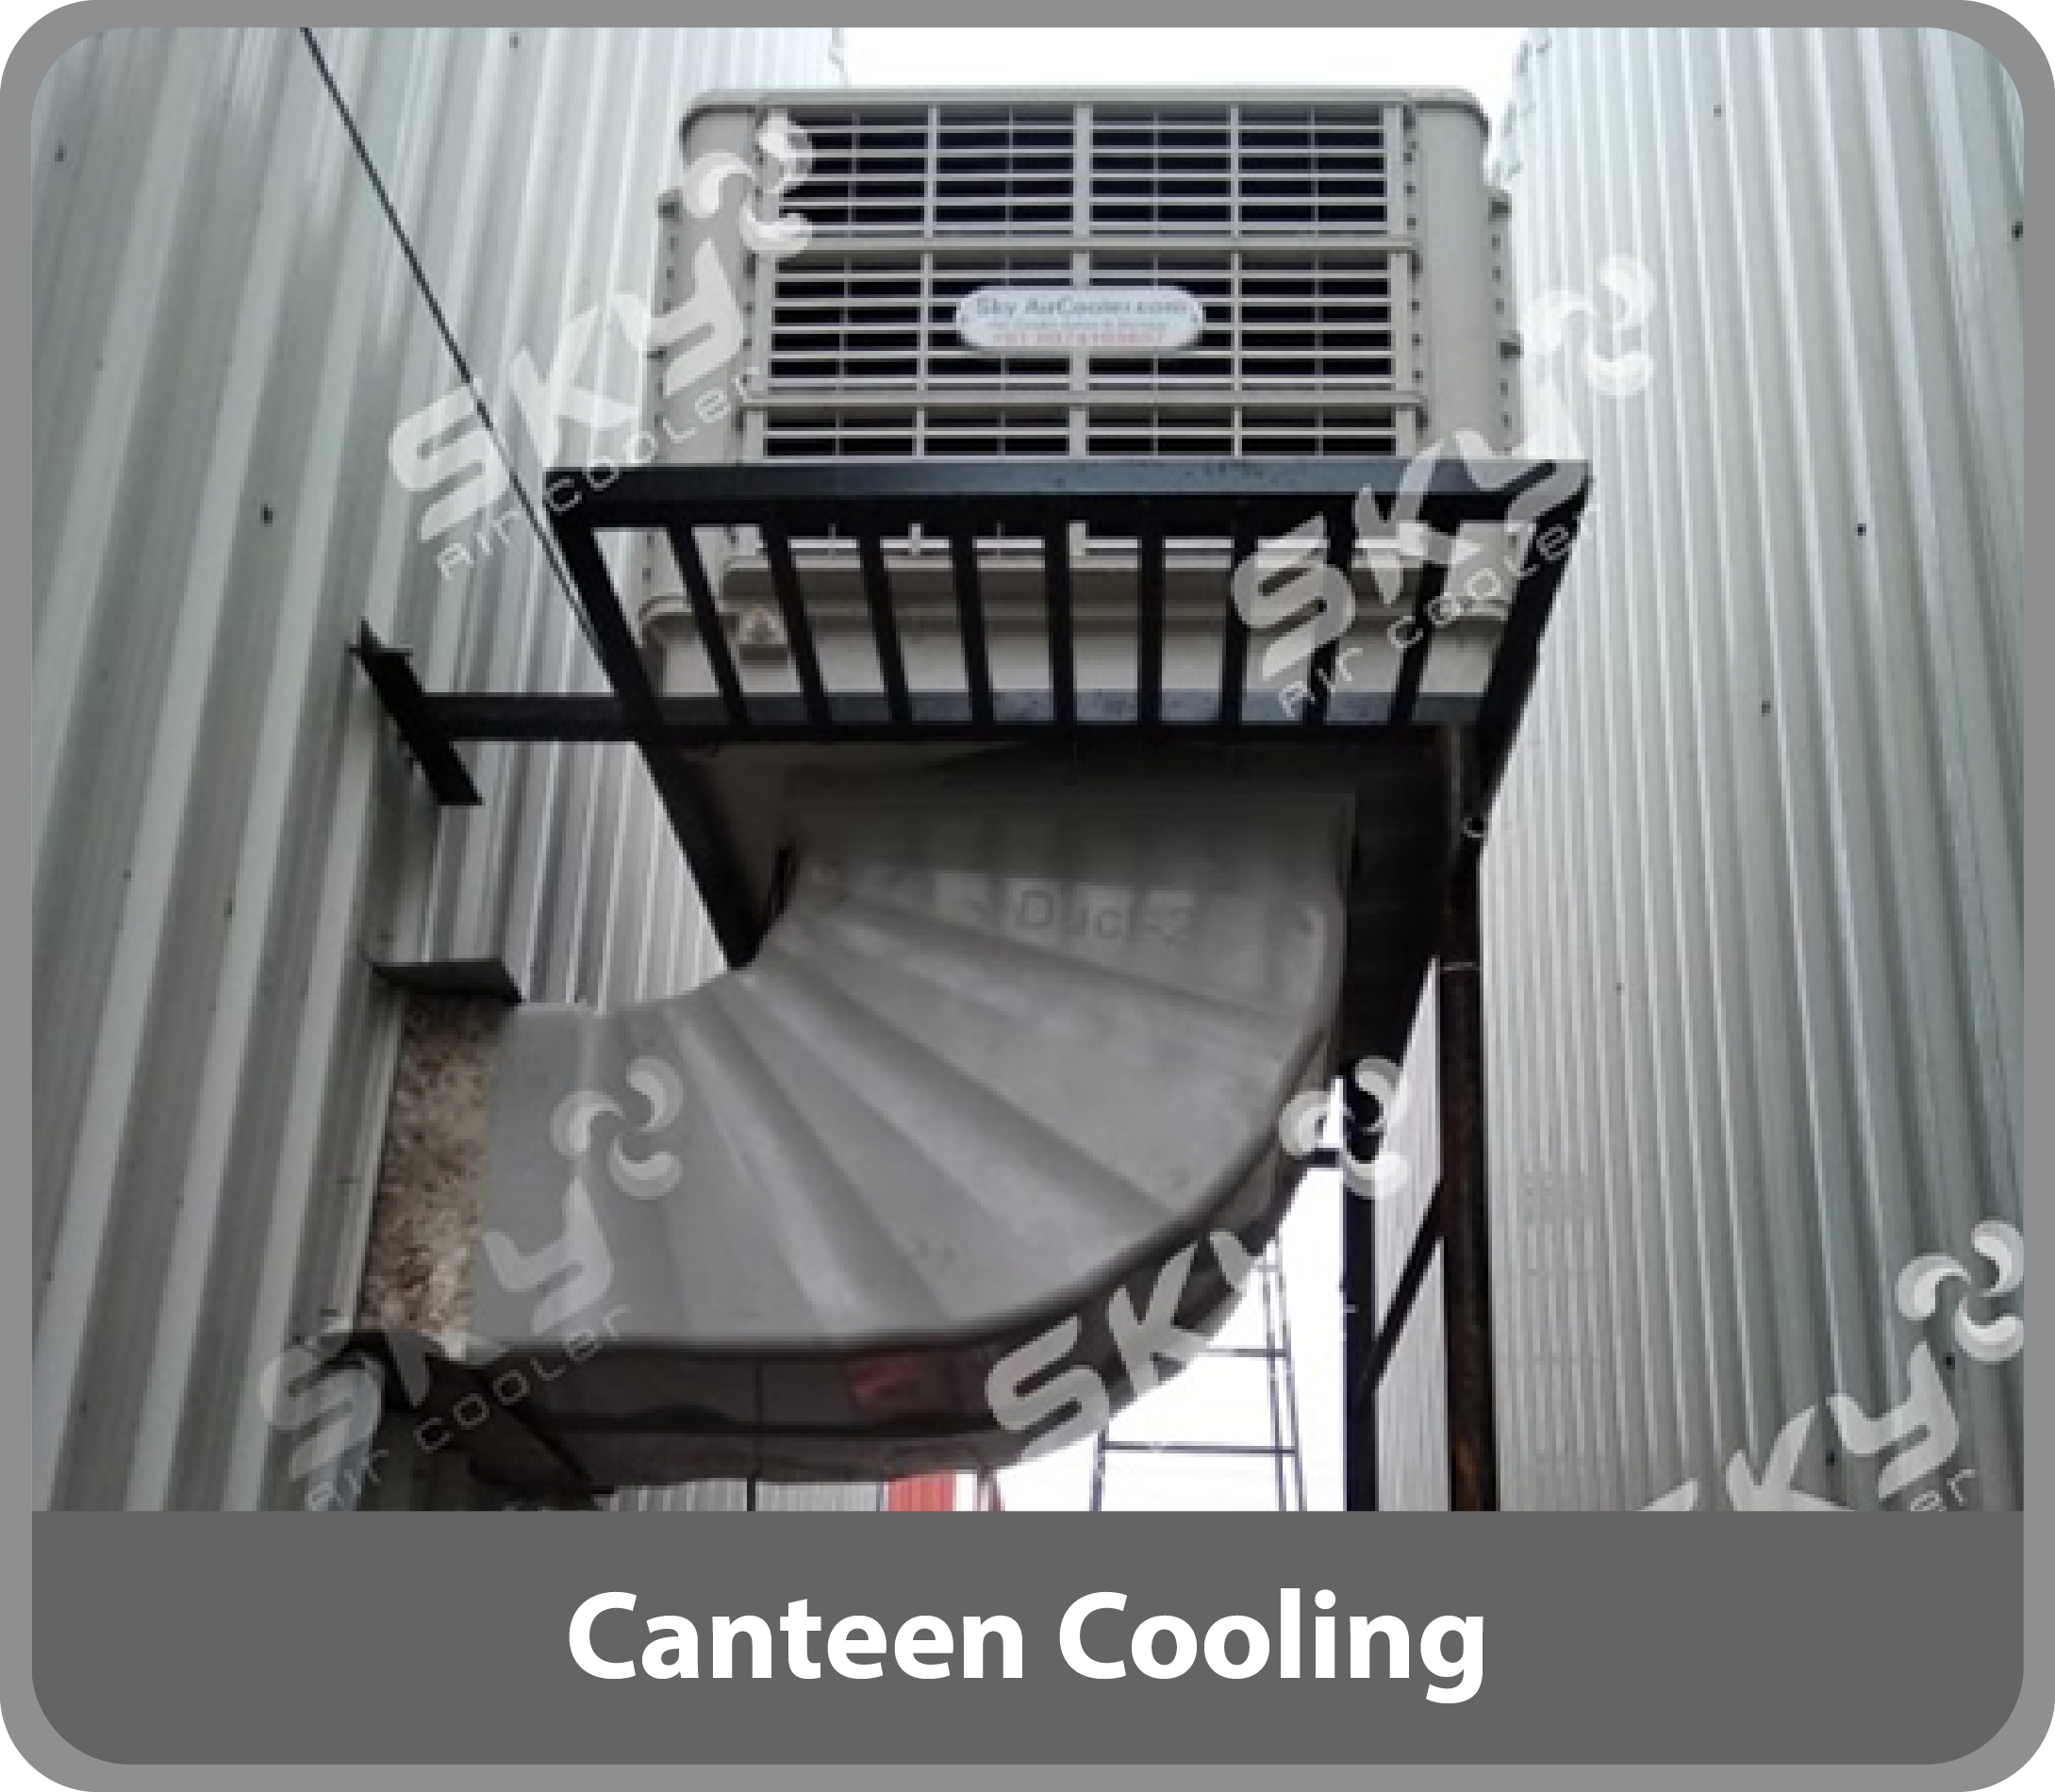 Canteen Cooling